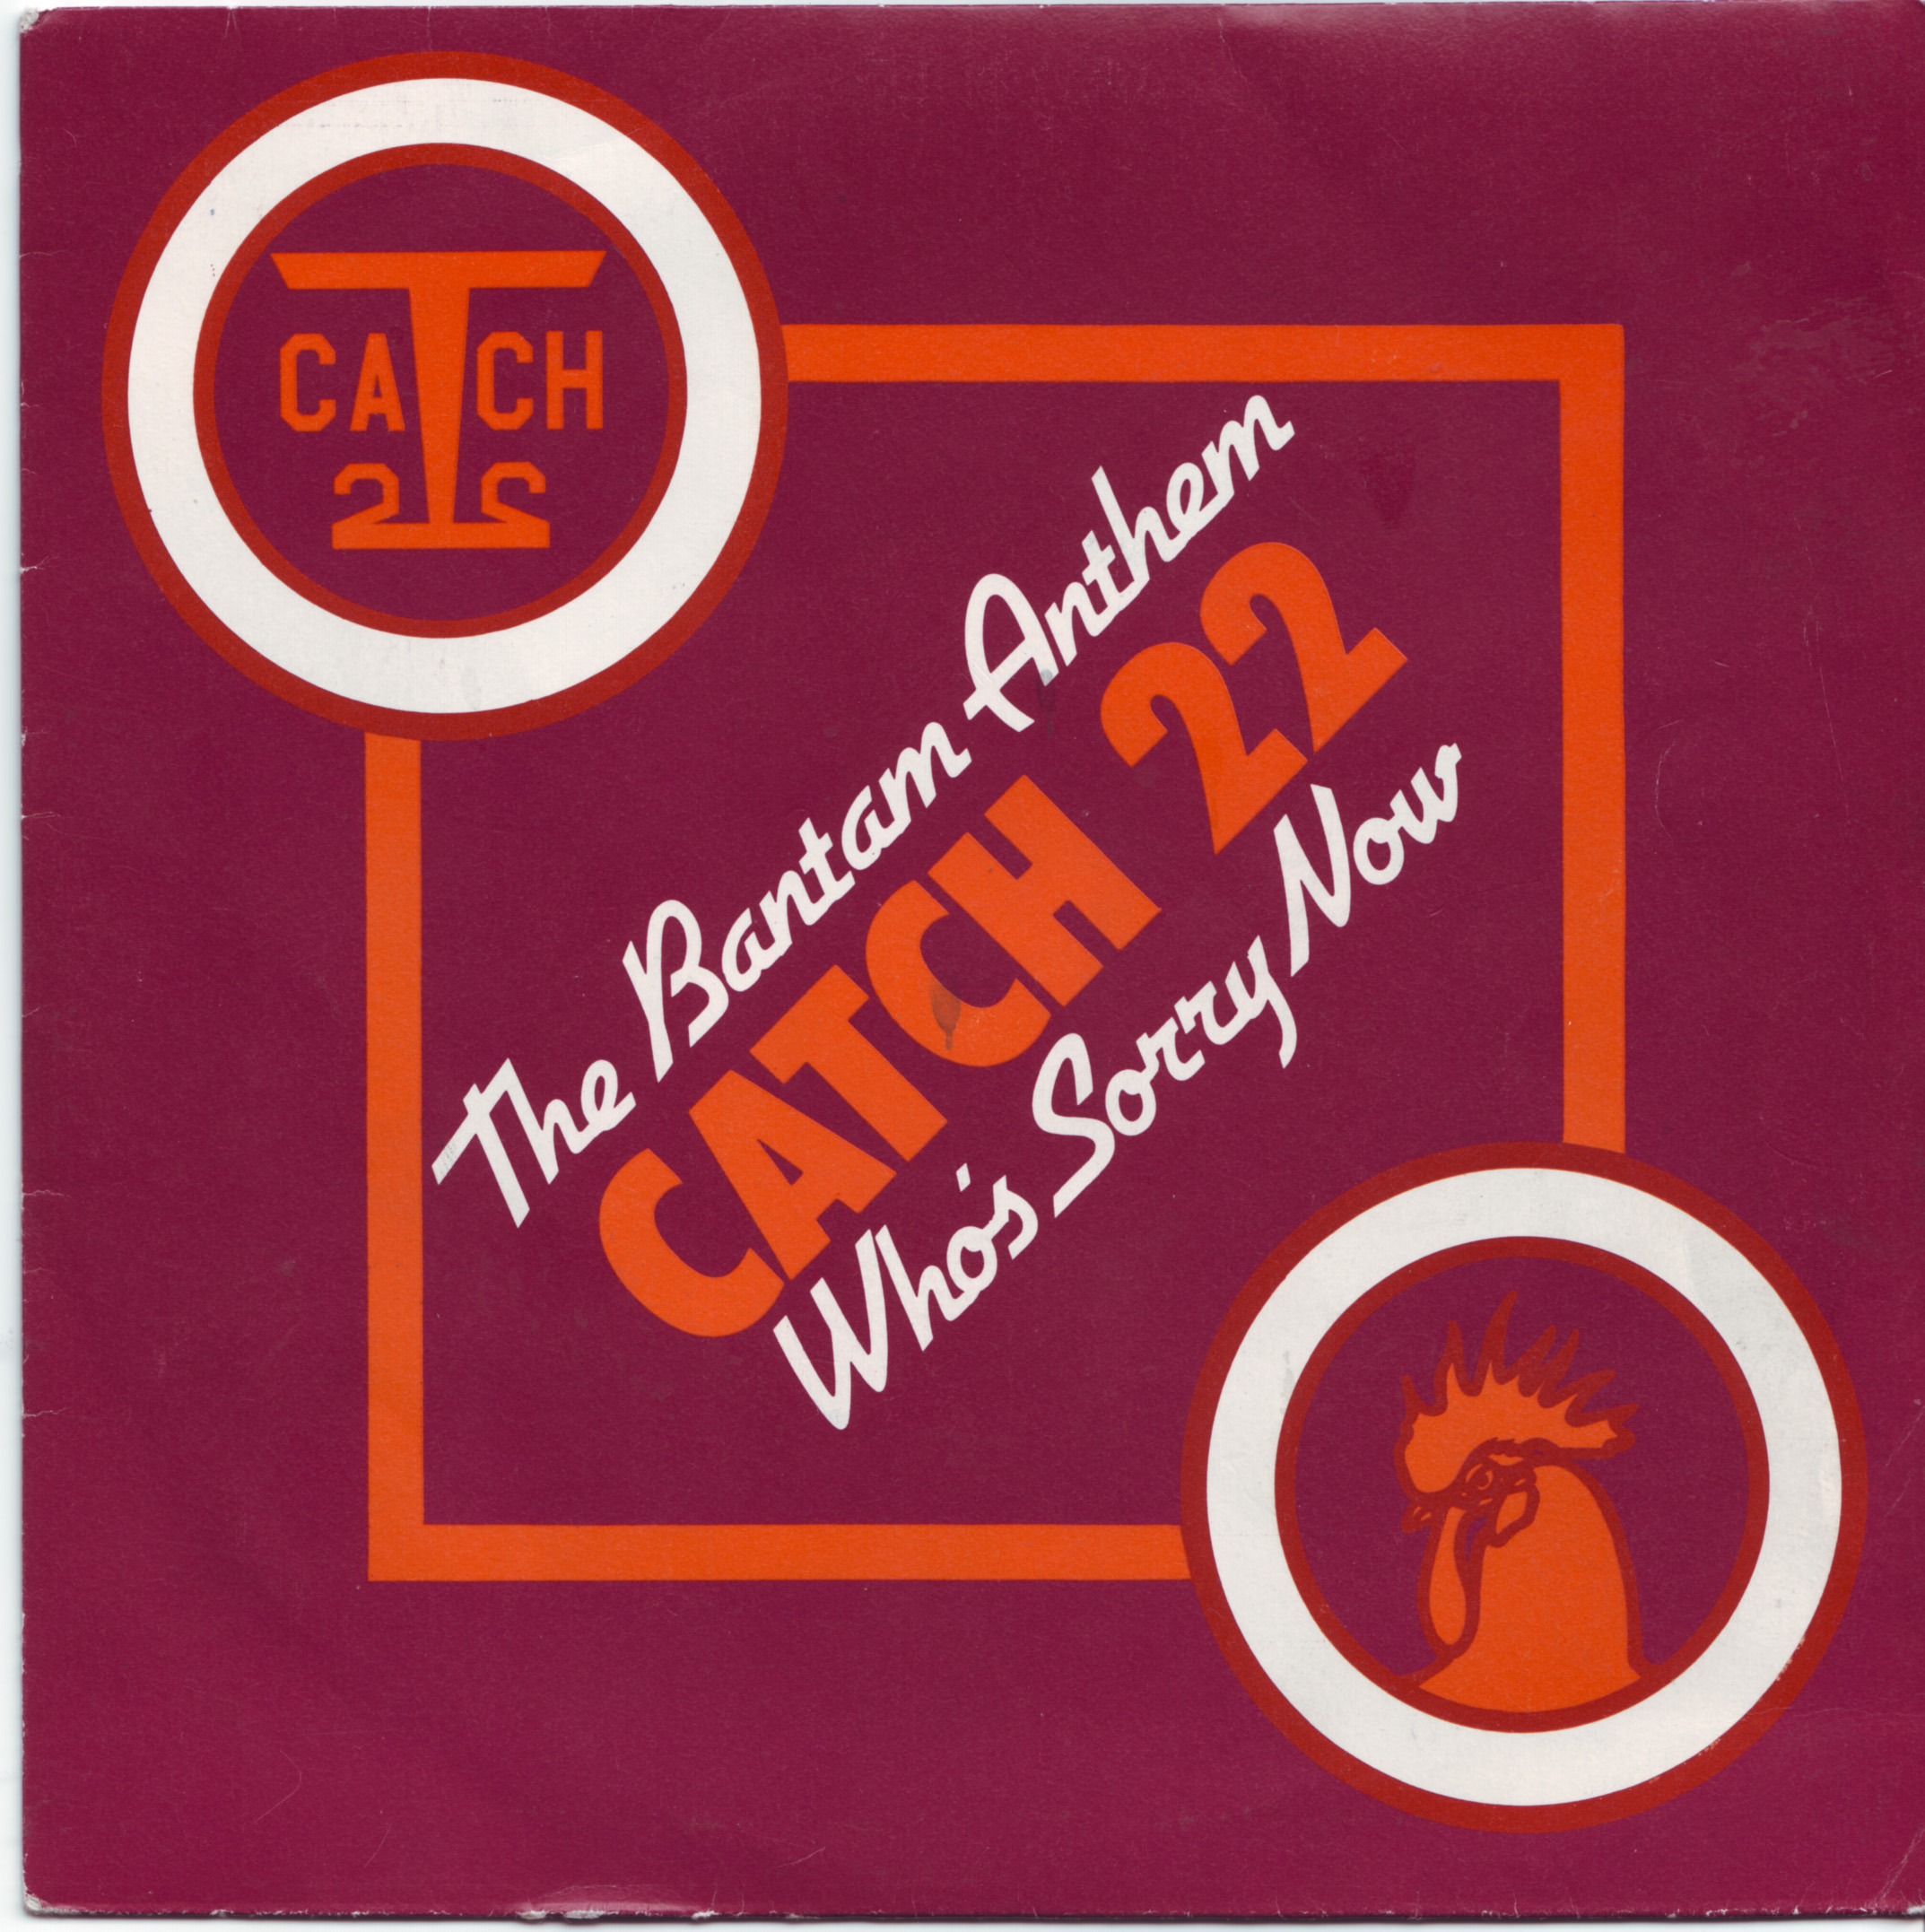 Catch 22 - The Bantam Anthem